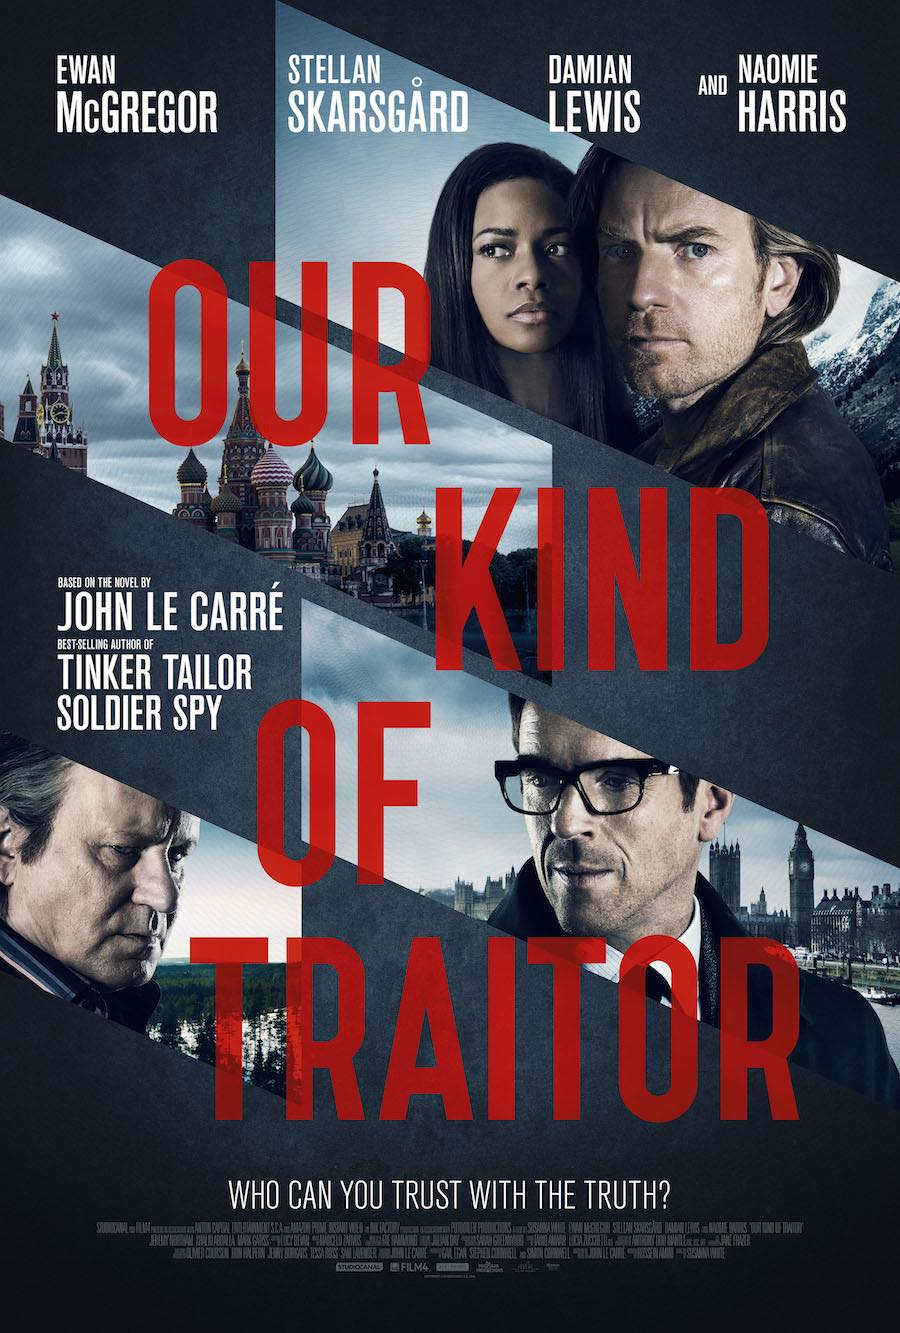 Our-Kind-Traitor-poster-900